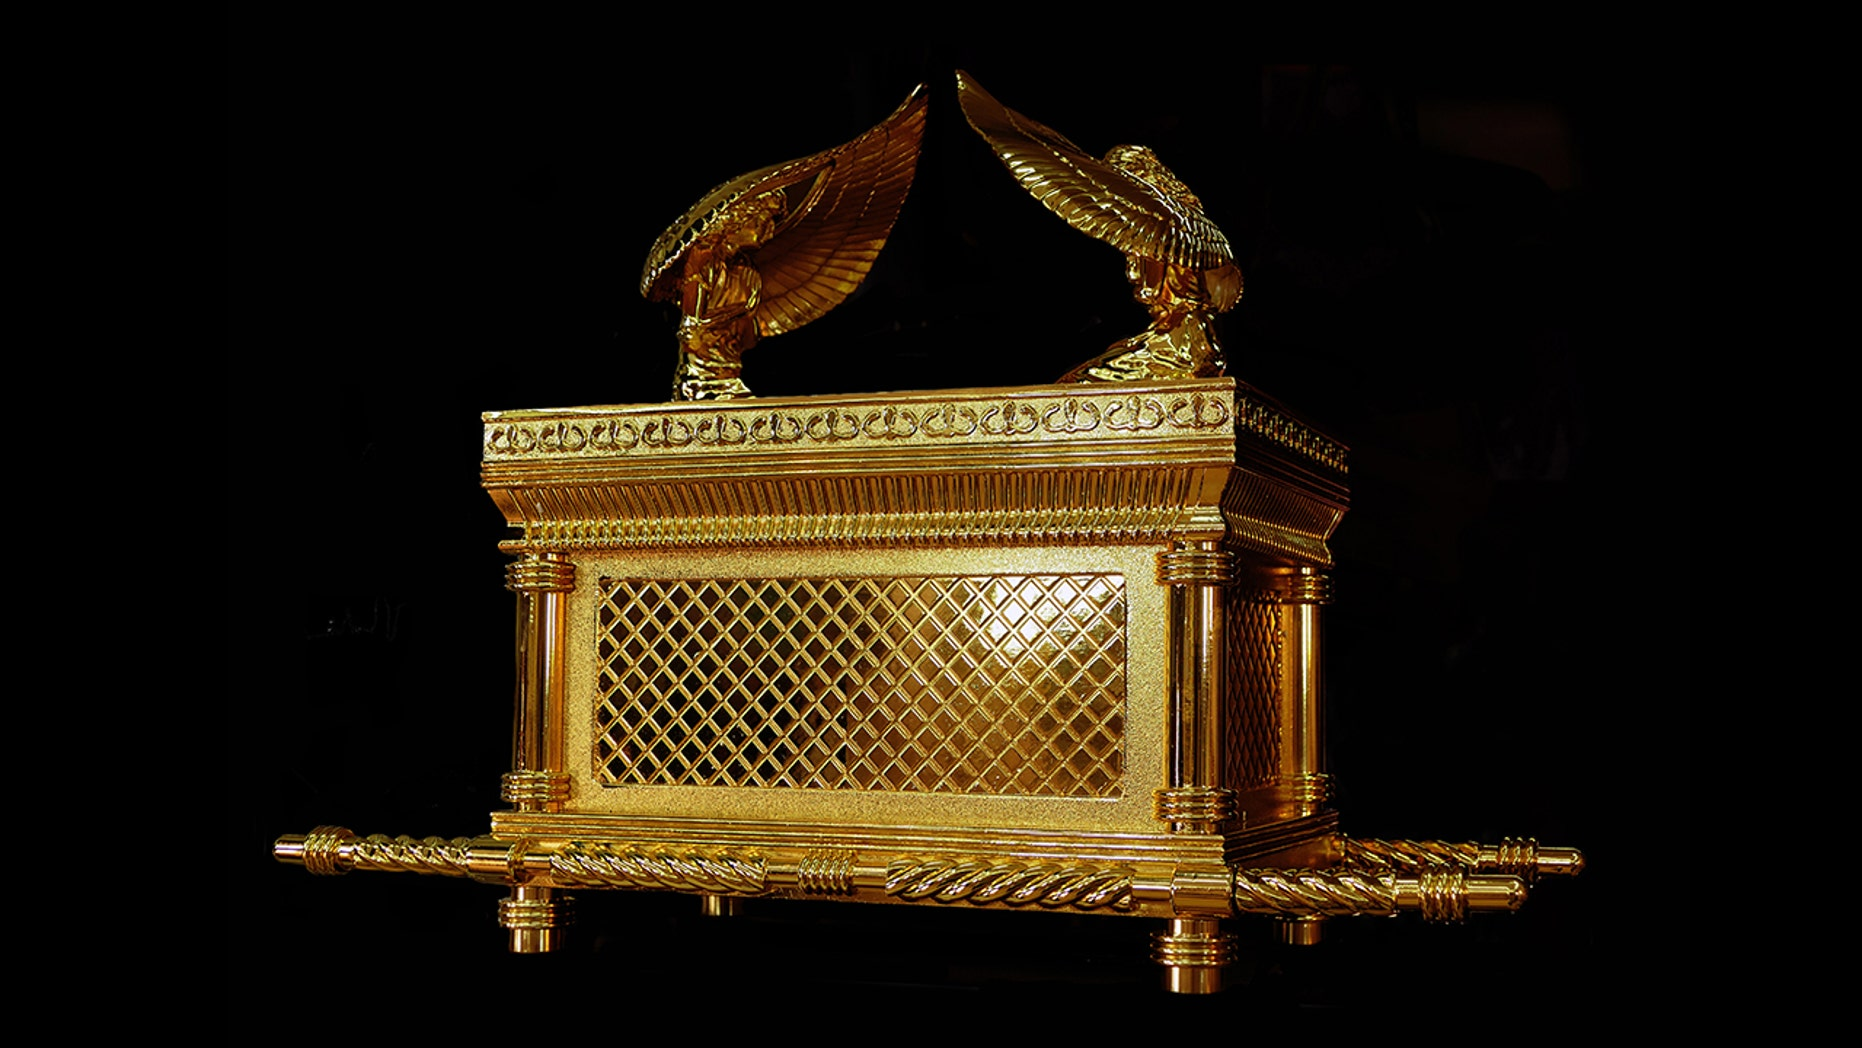 Replica of the Ark of the Covenant, a gold-covered wooden chest described in the Book of Exodus as containing the two stone tablets of the Ten Commandments. According to various texts within the Hebrew Bible, it also contained Aaron's rod and a pot of manna.